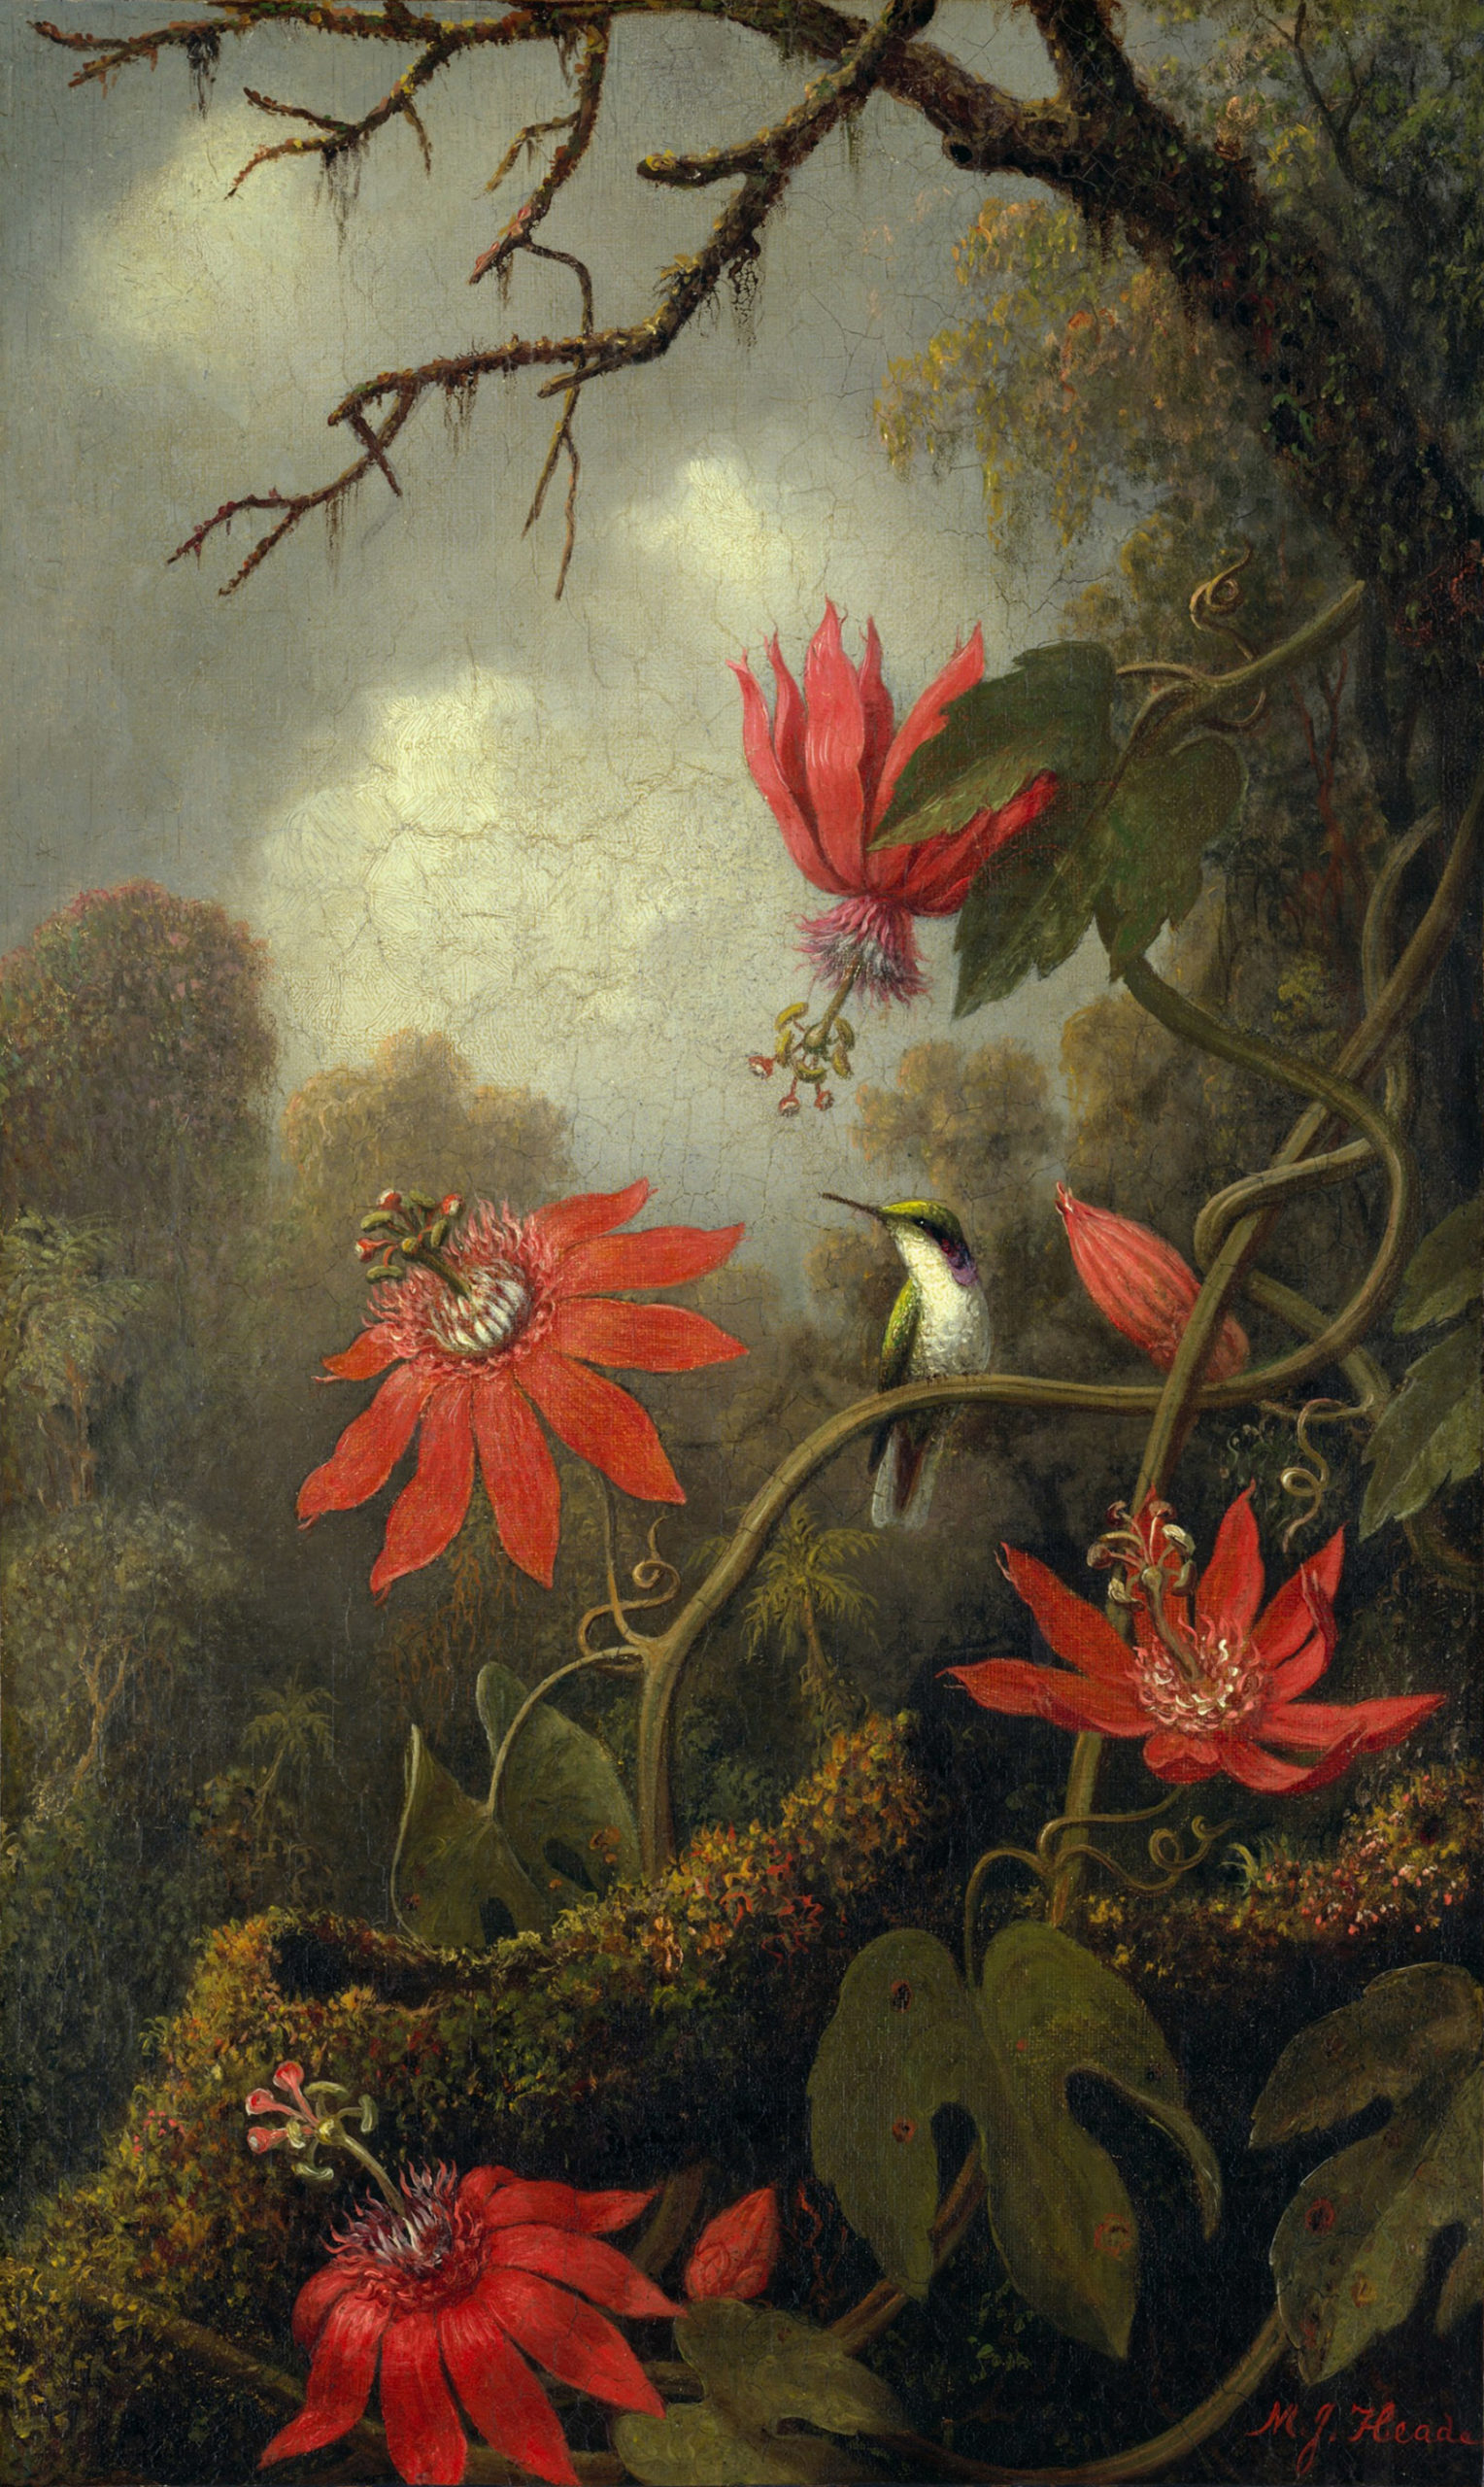 Hummingbird and Passionflowers; painting by Martin Johnson Heade